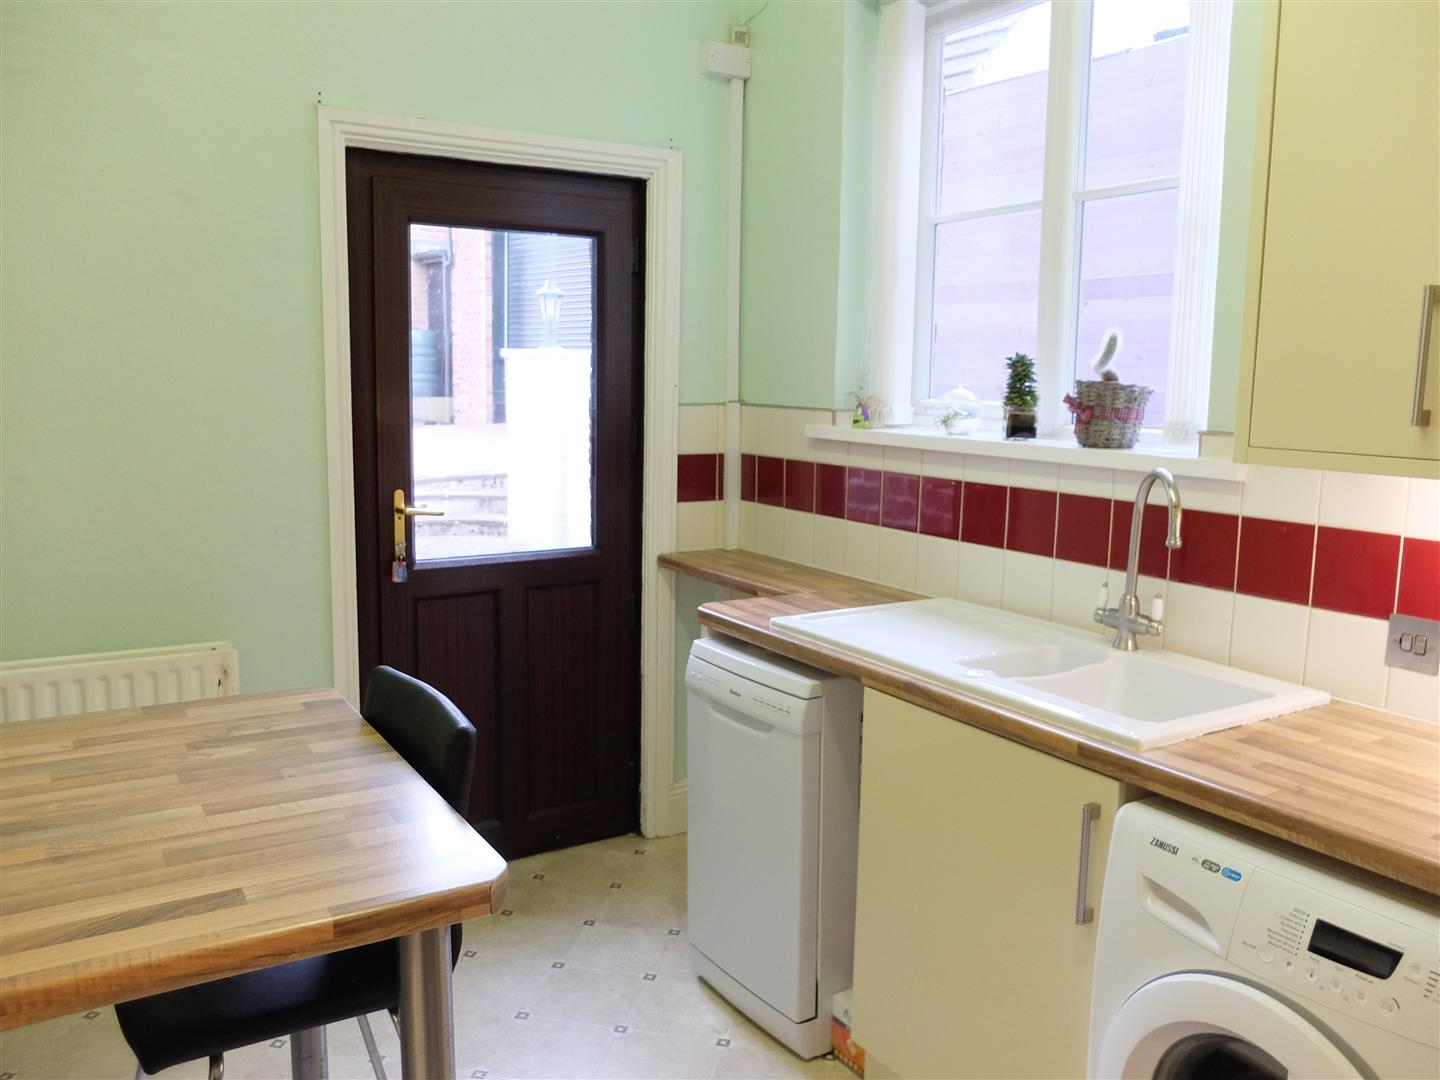 26 The Green Carlisle Home For Sale 180,000